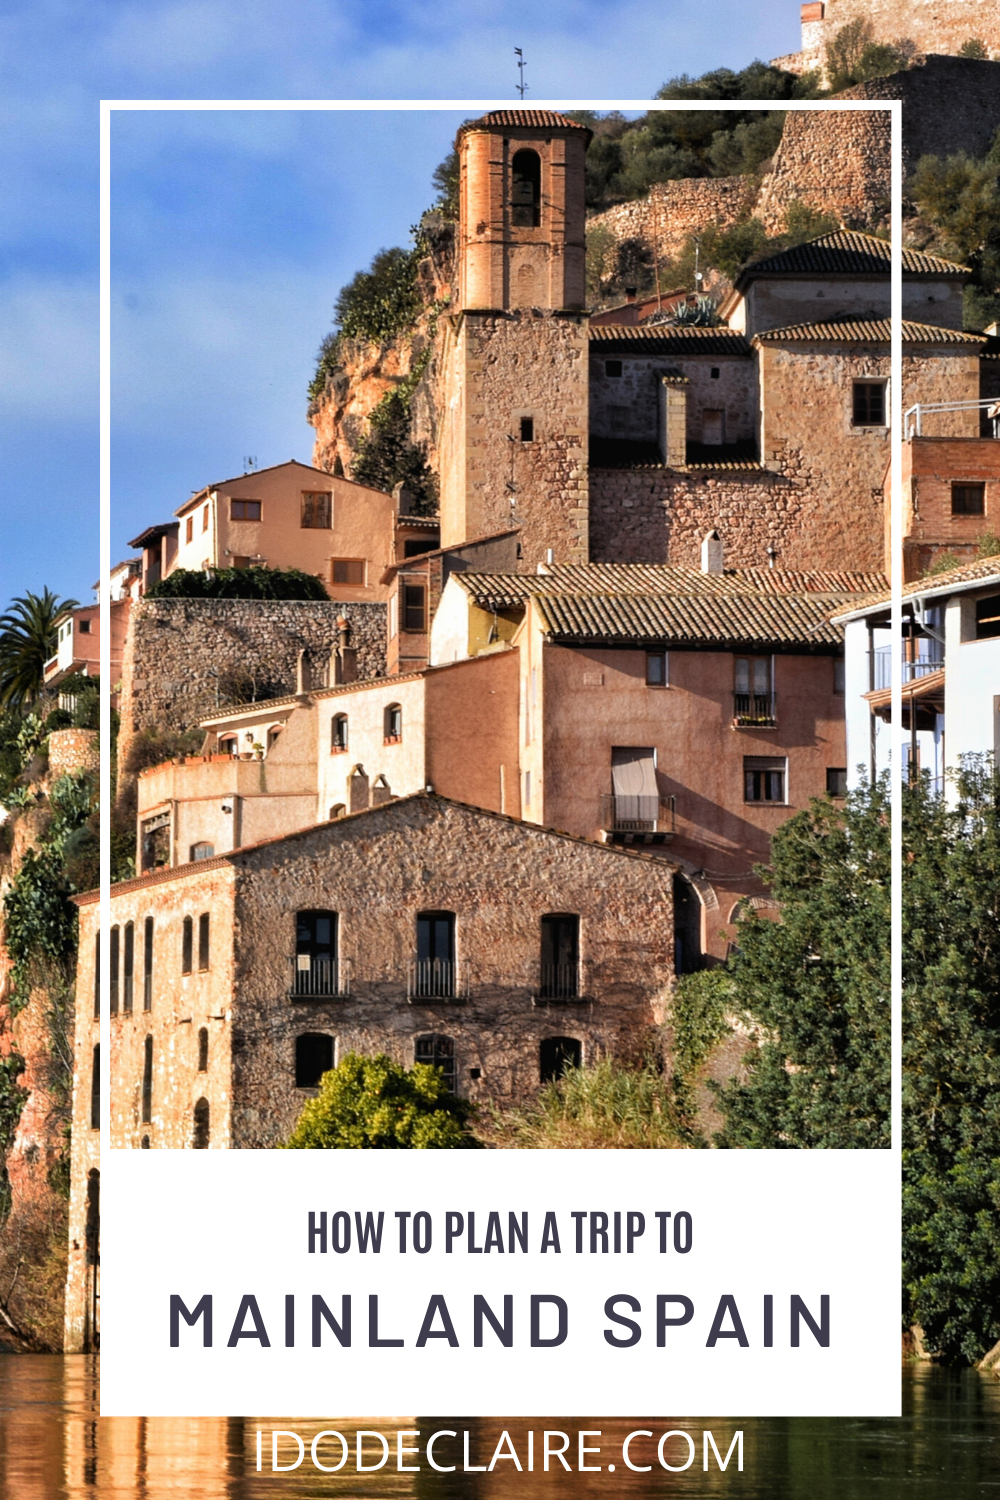 How to Plan Travel to Mainland Spain